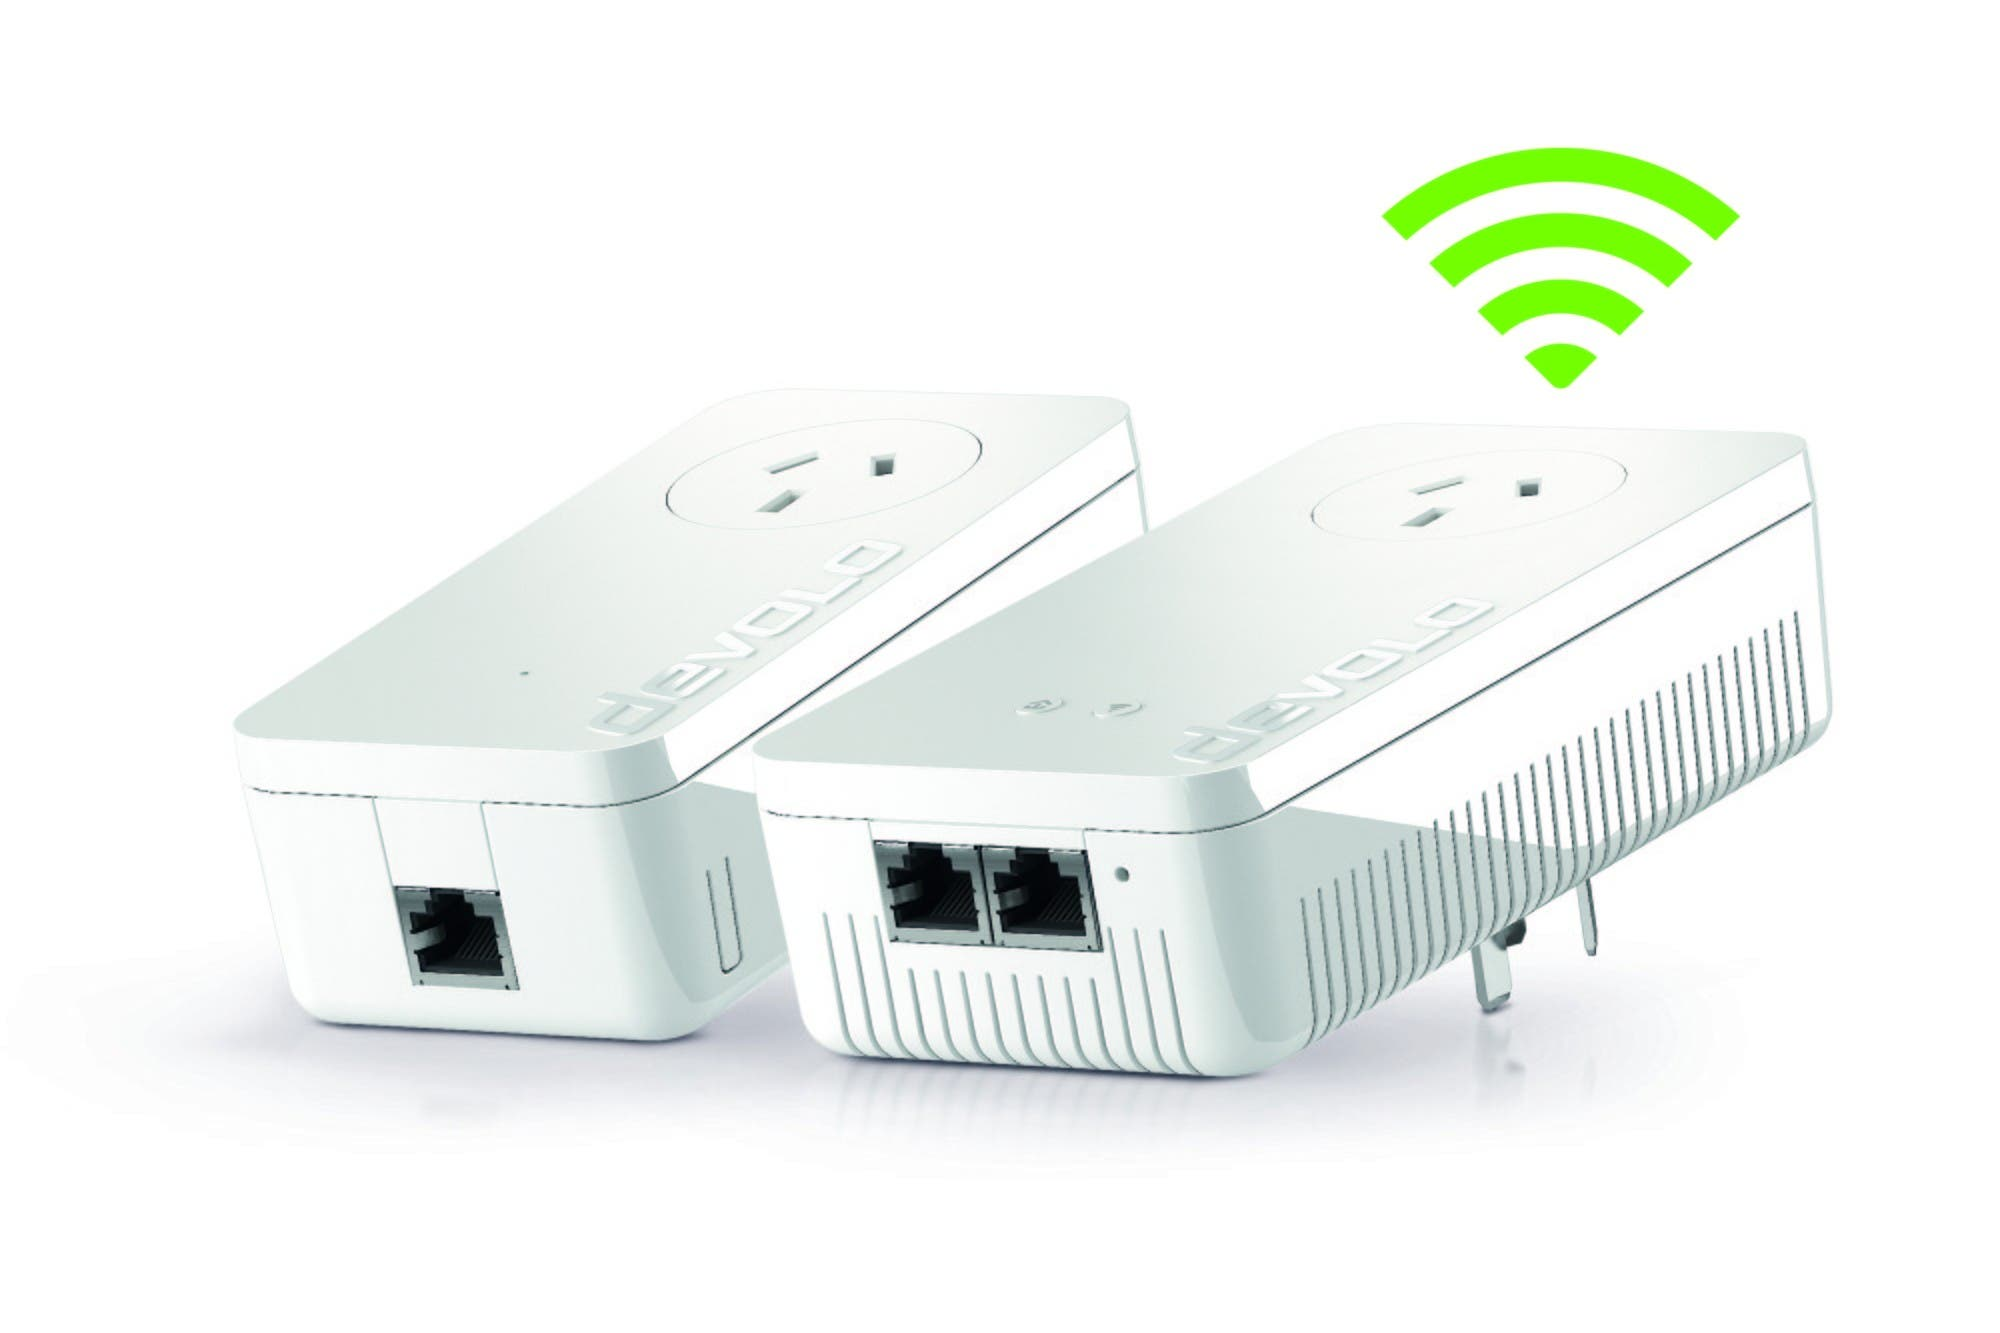 Internet por el enchufe: probamos el equipo Powerline Devolo 1200+ WiFi Starter Kit